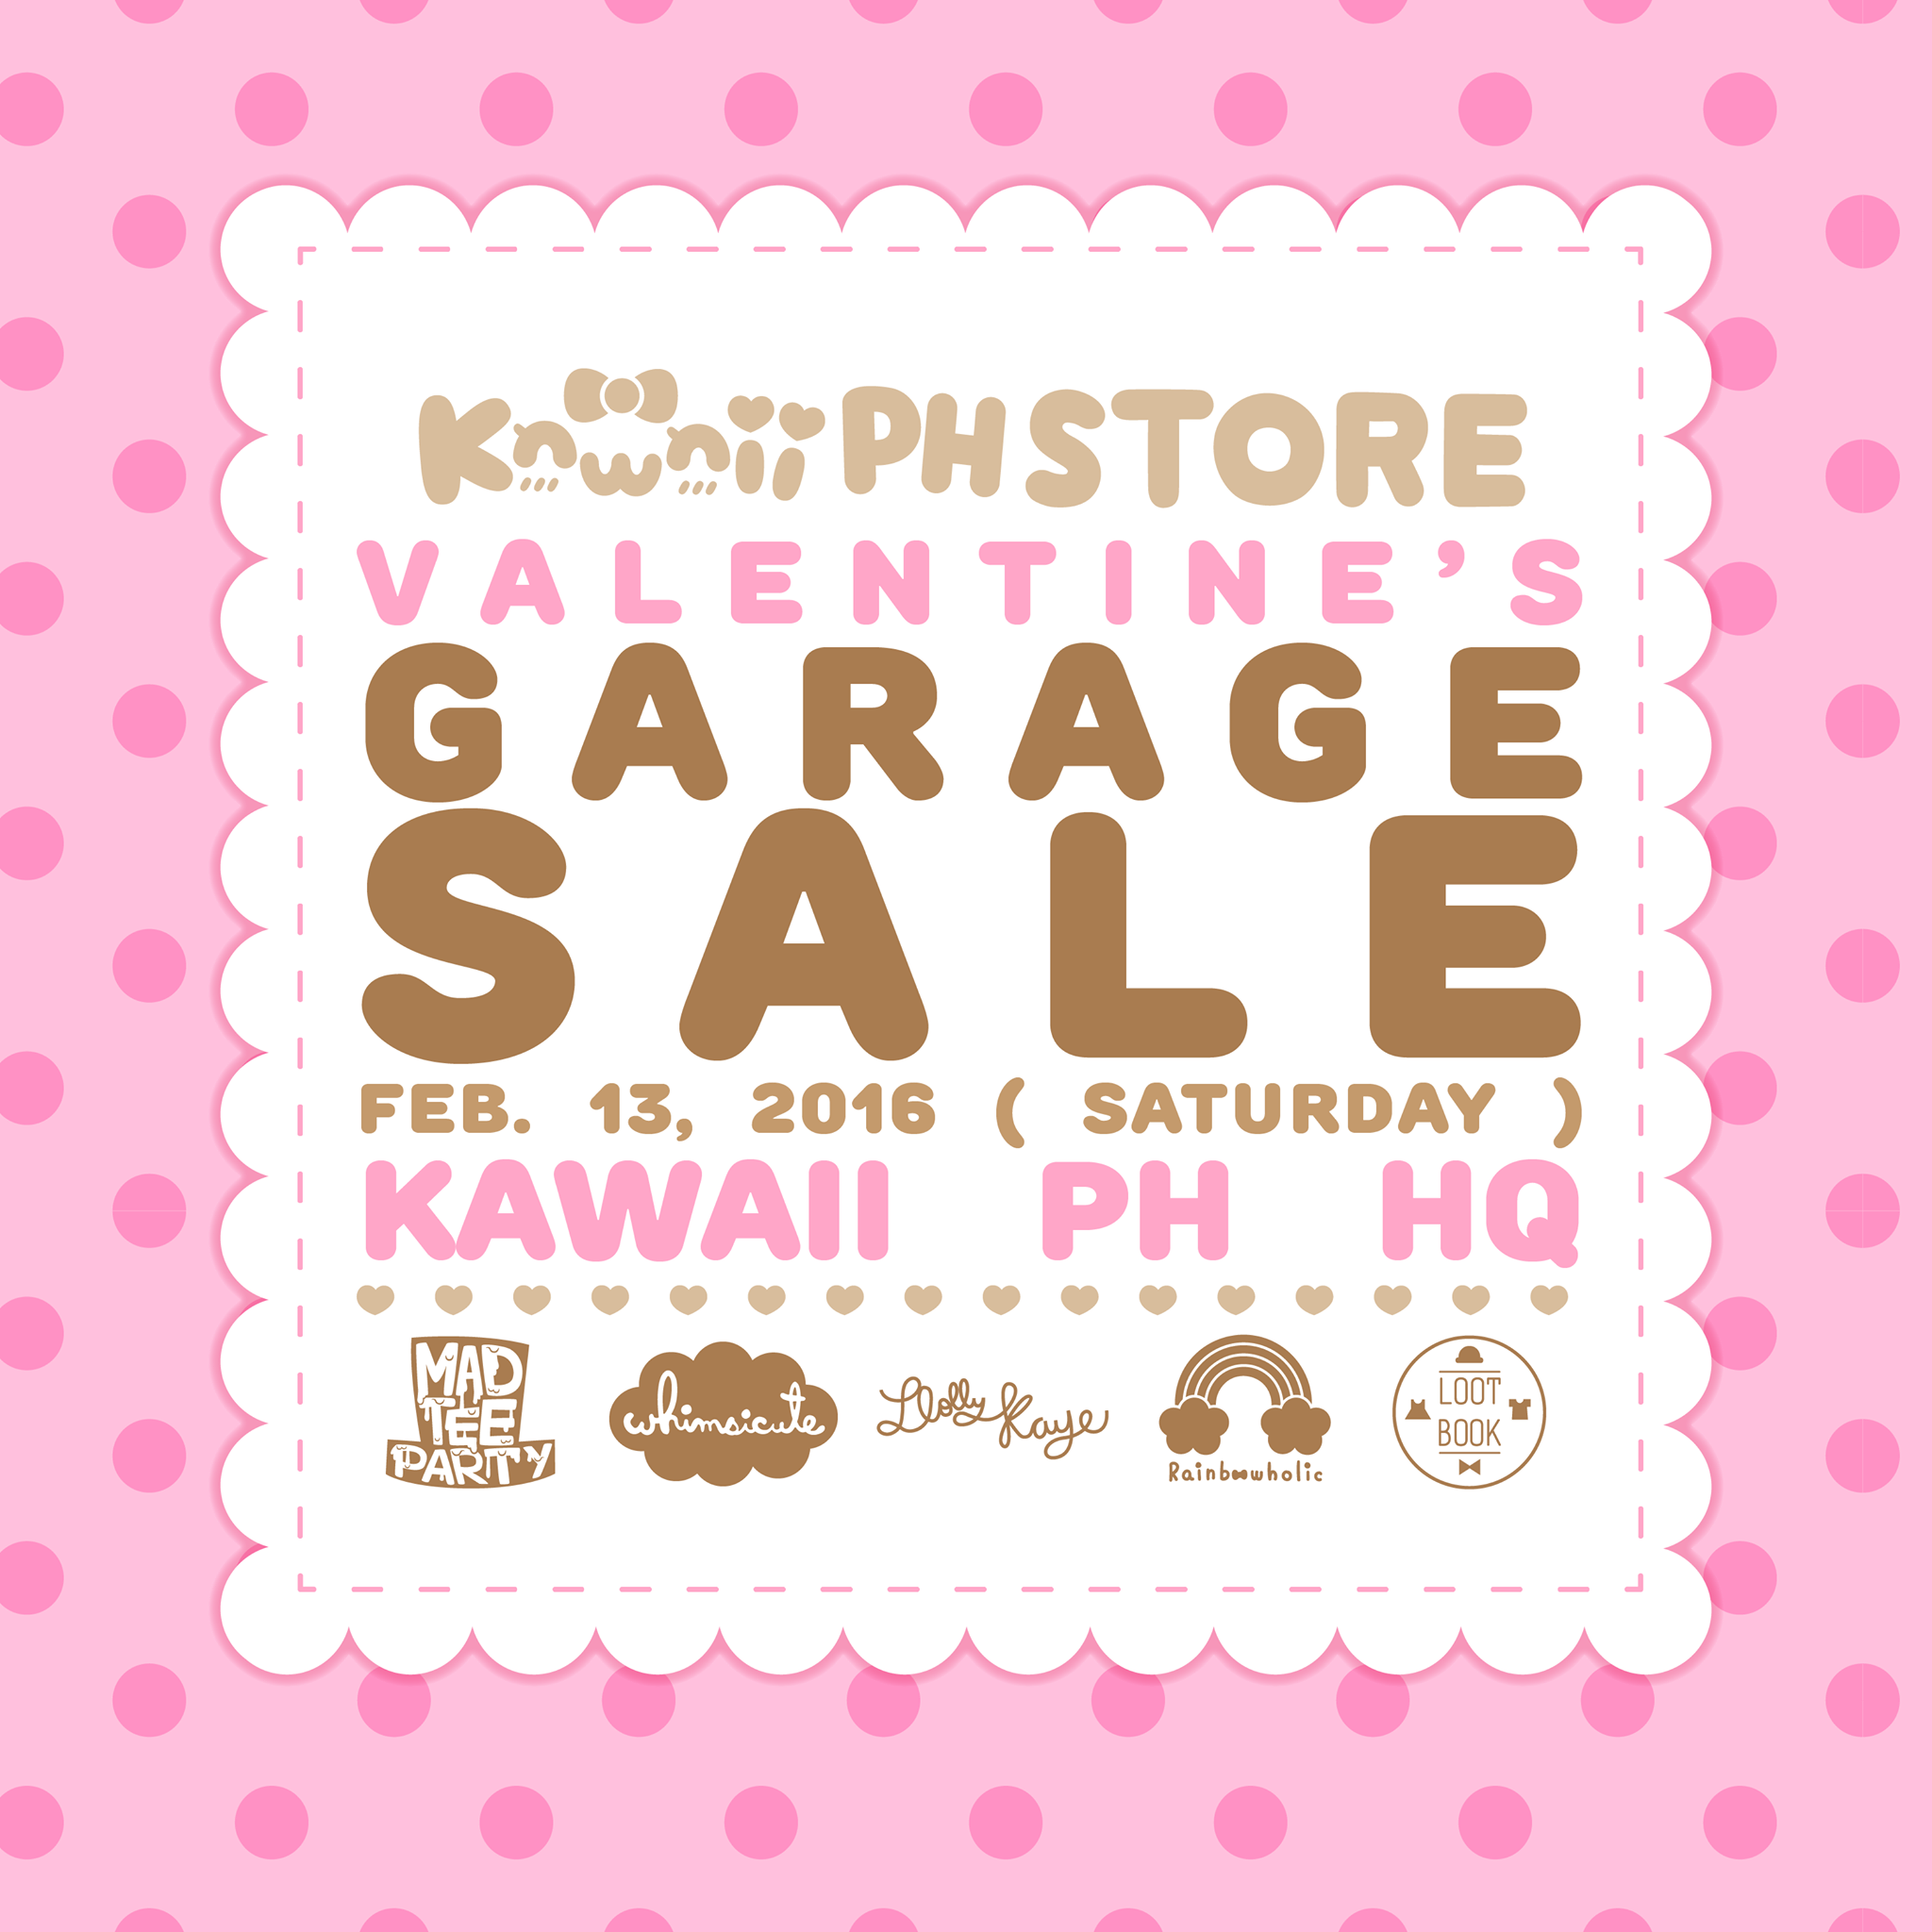 kawaii ph store valentine's garage sale